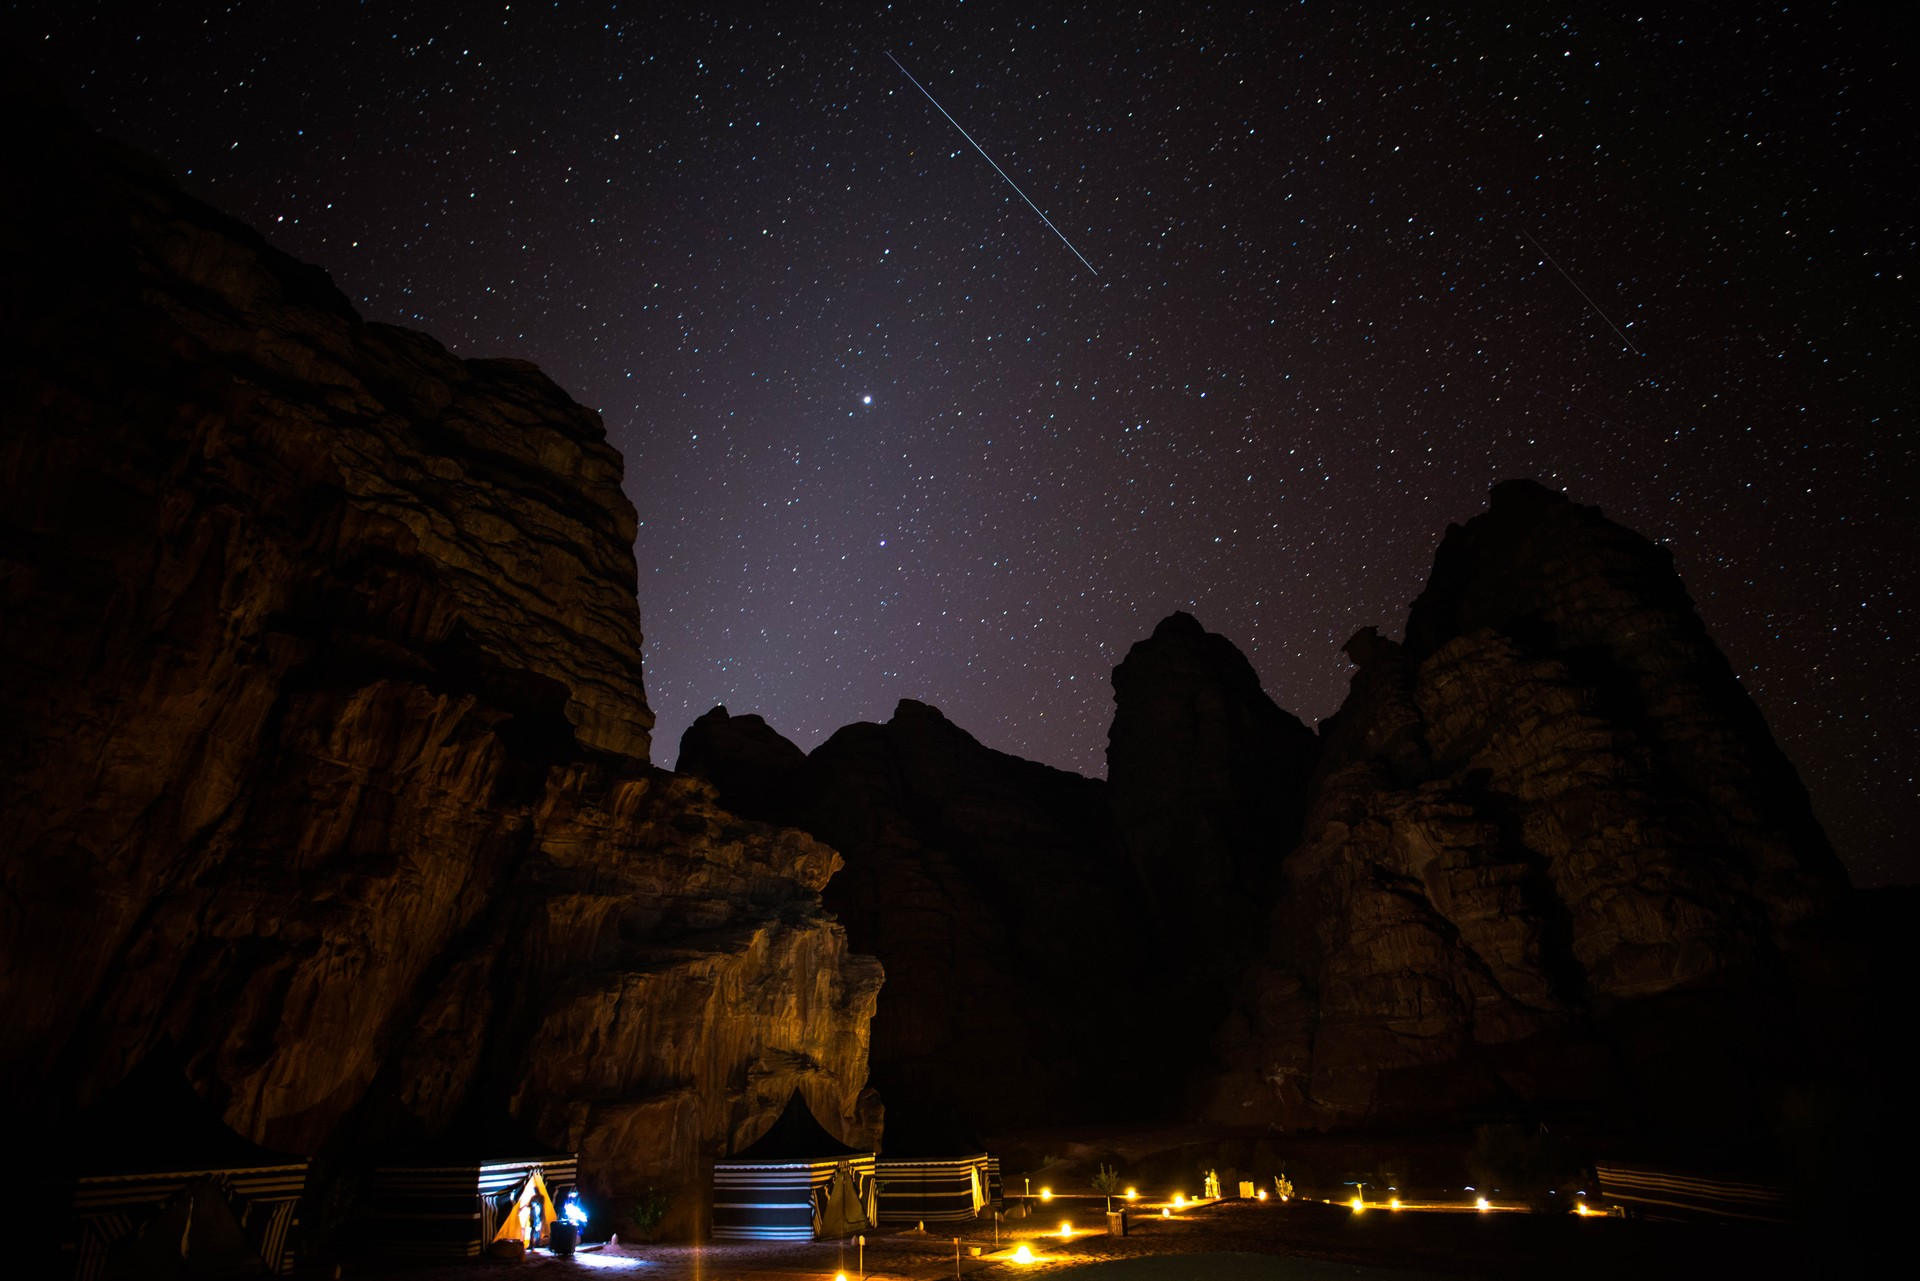 The night sky above a Bedouin camp in the middle of Wadi Rum, Jordan